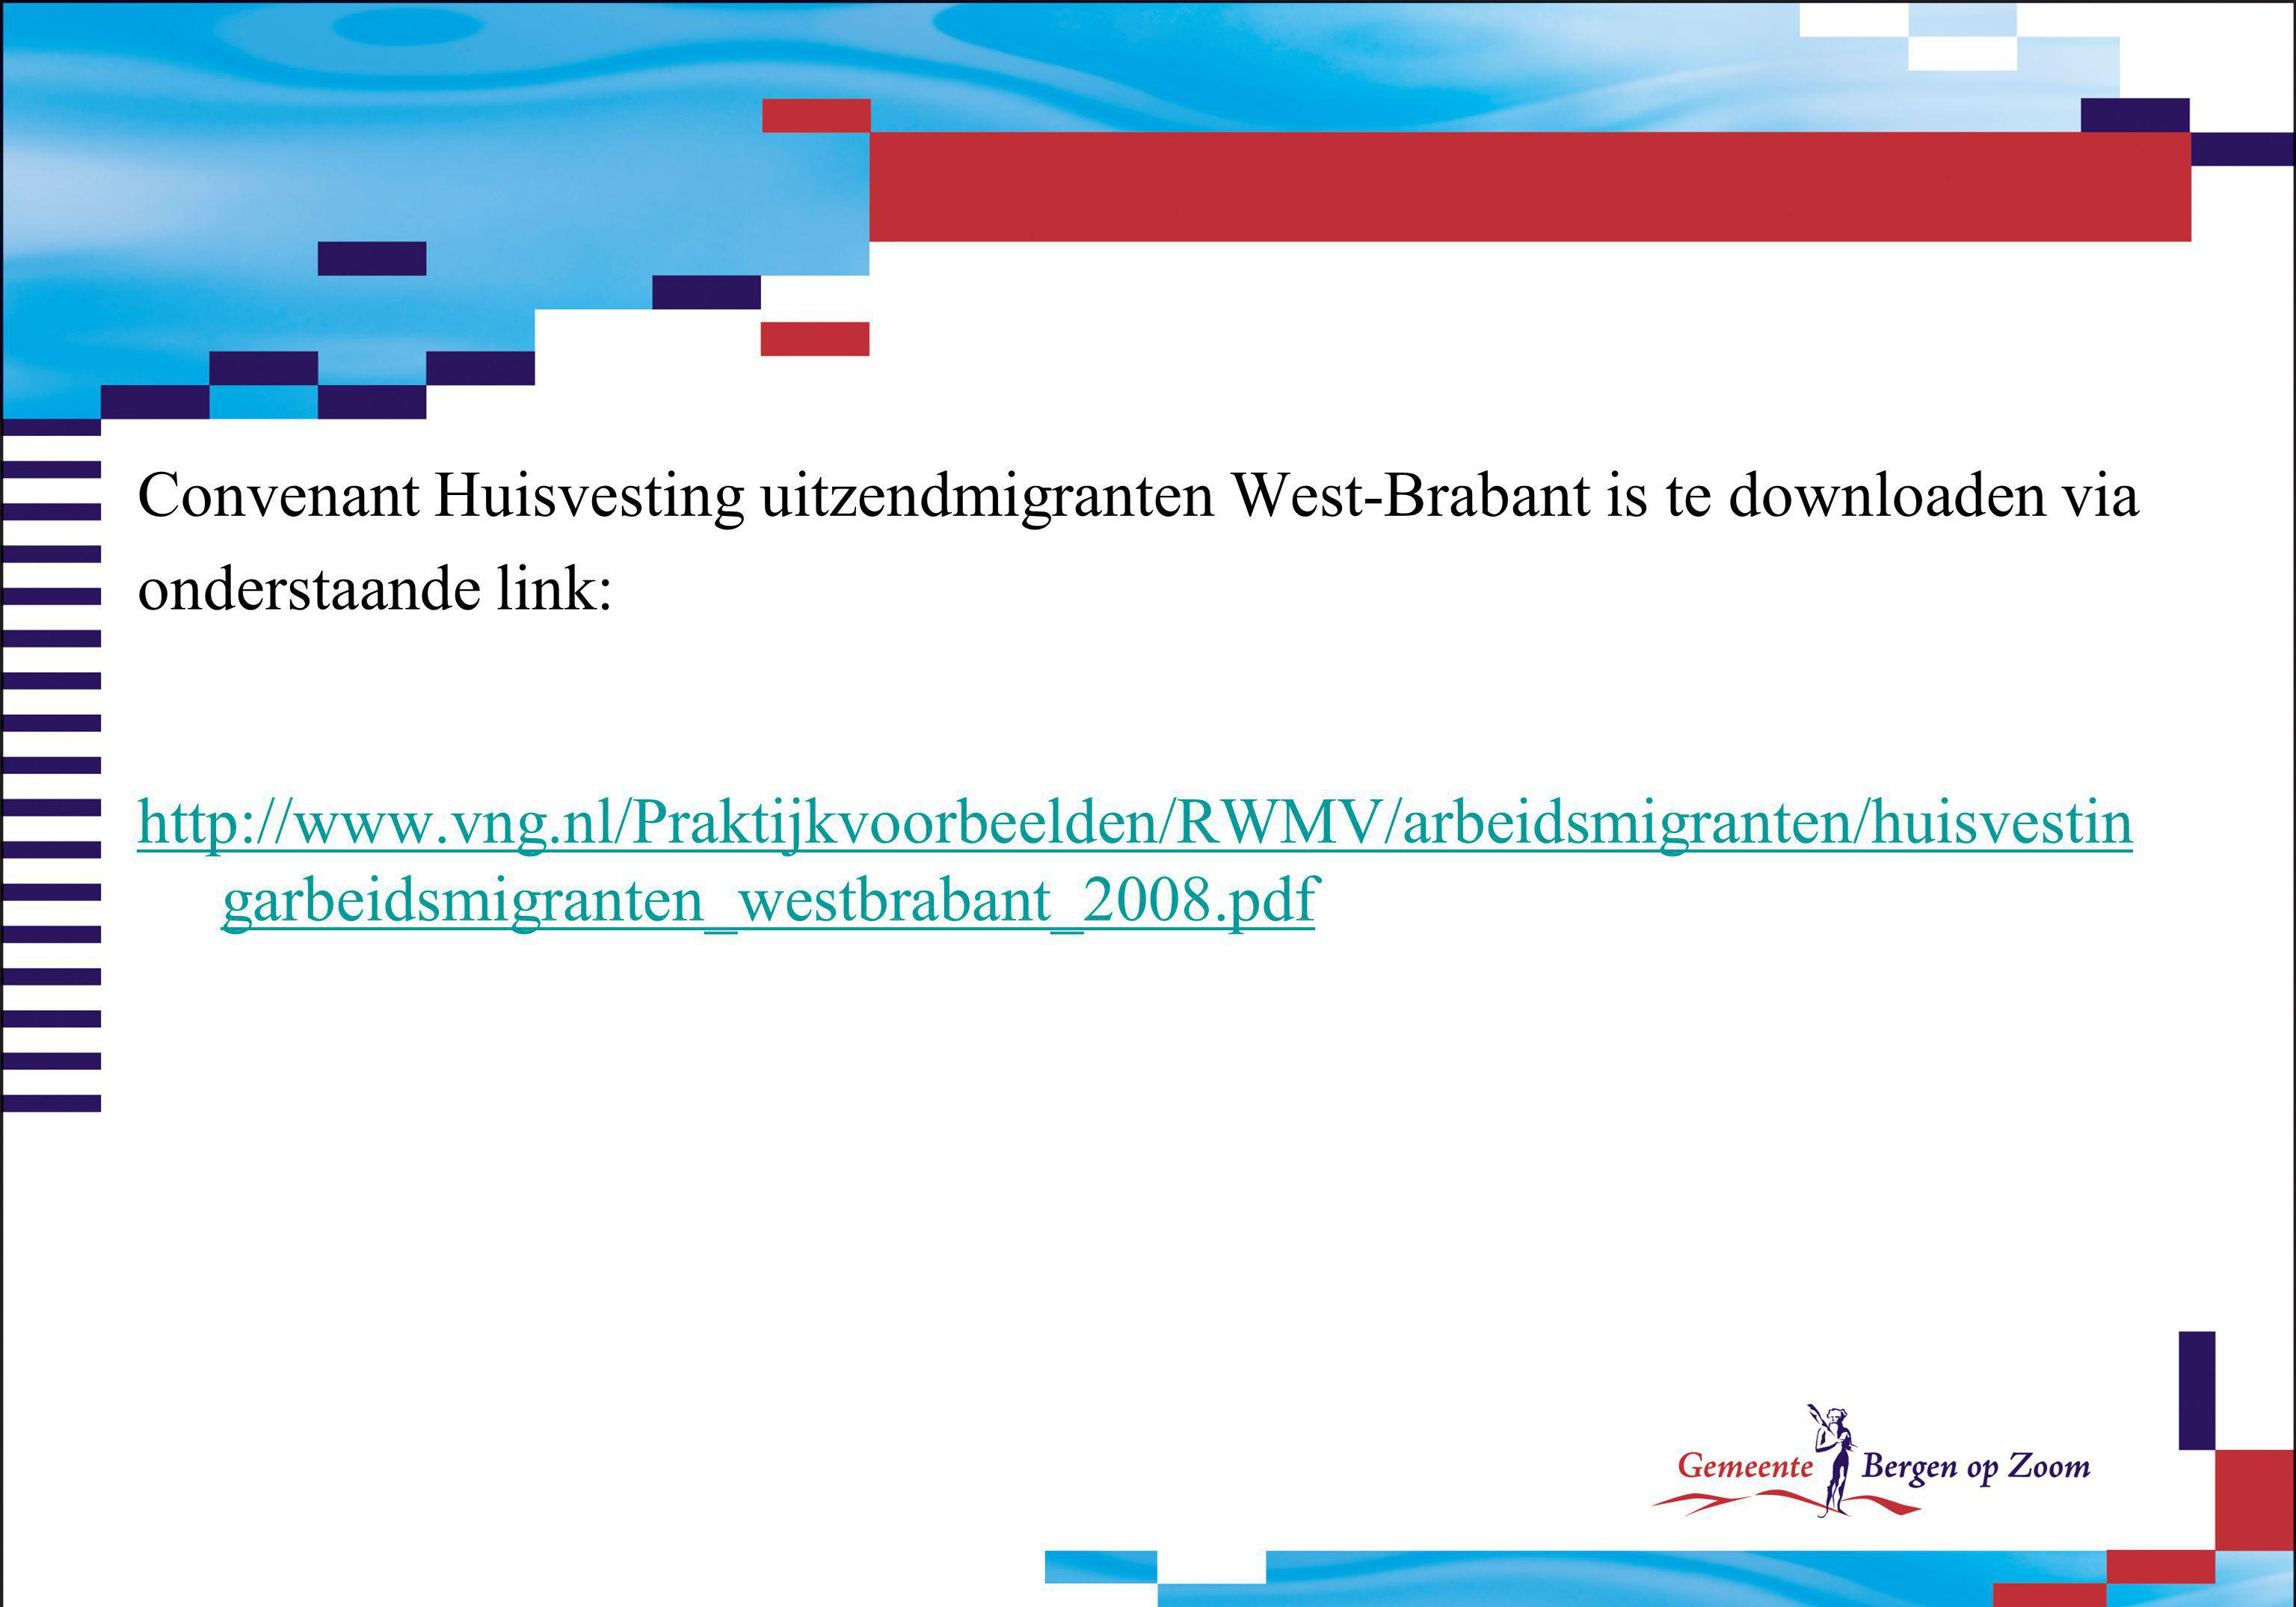 Convenant Huisvesting uitzendmigranten West-Brabant is te downloaden via